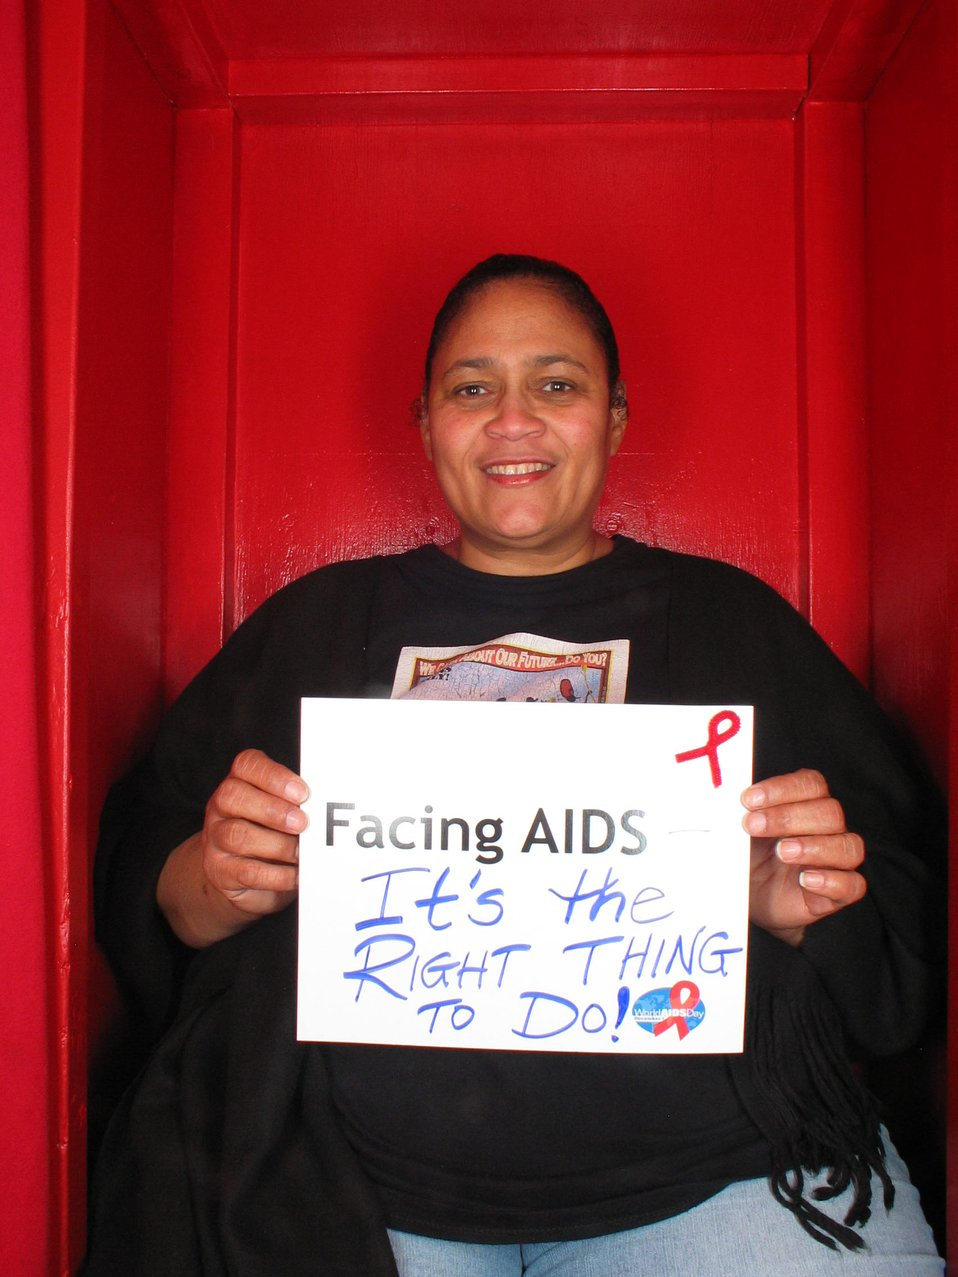 Facing AIDS It's the right thing to do!